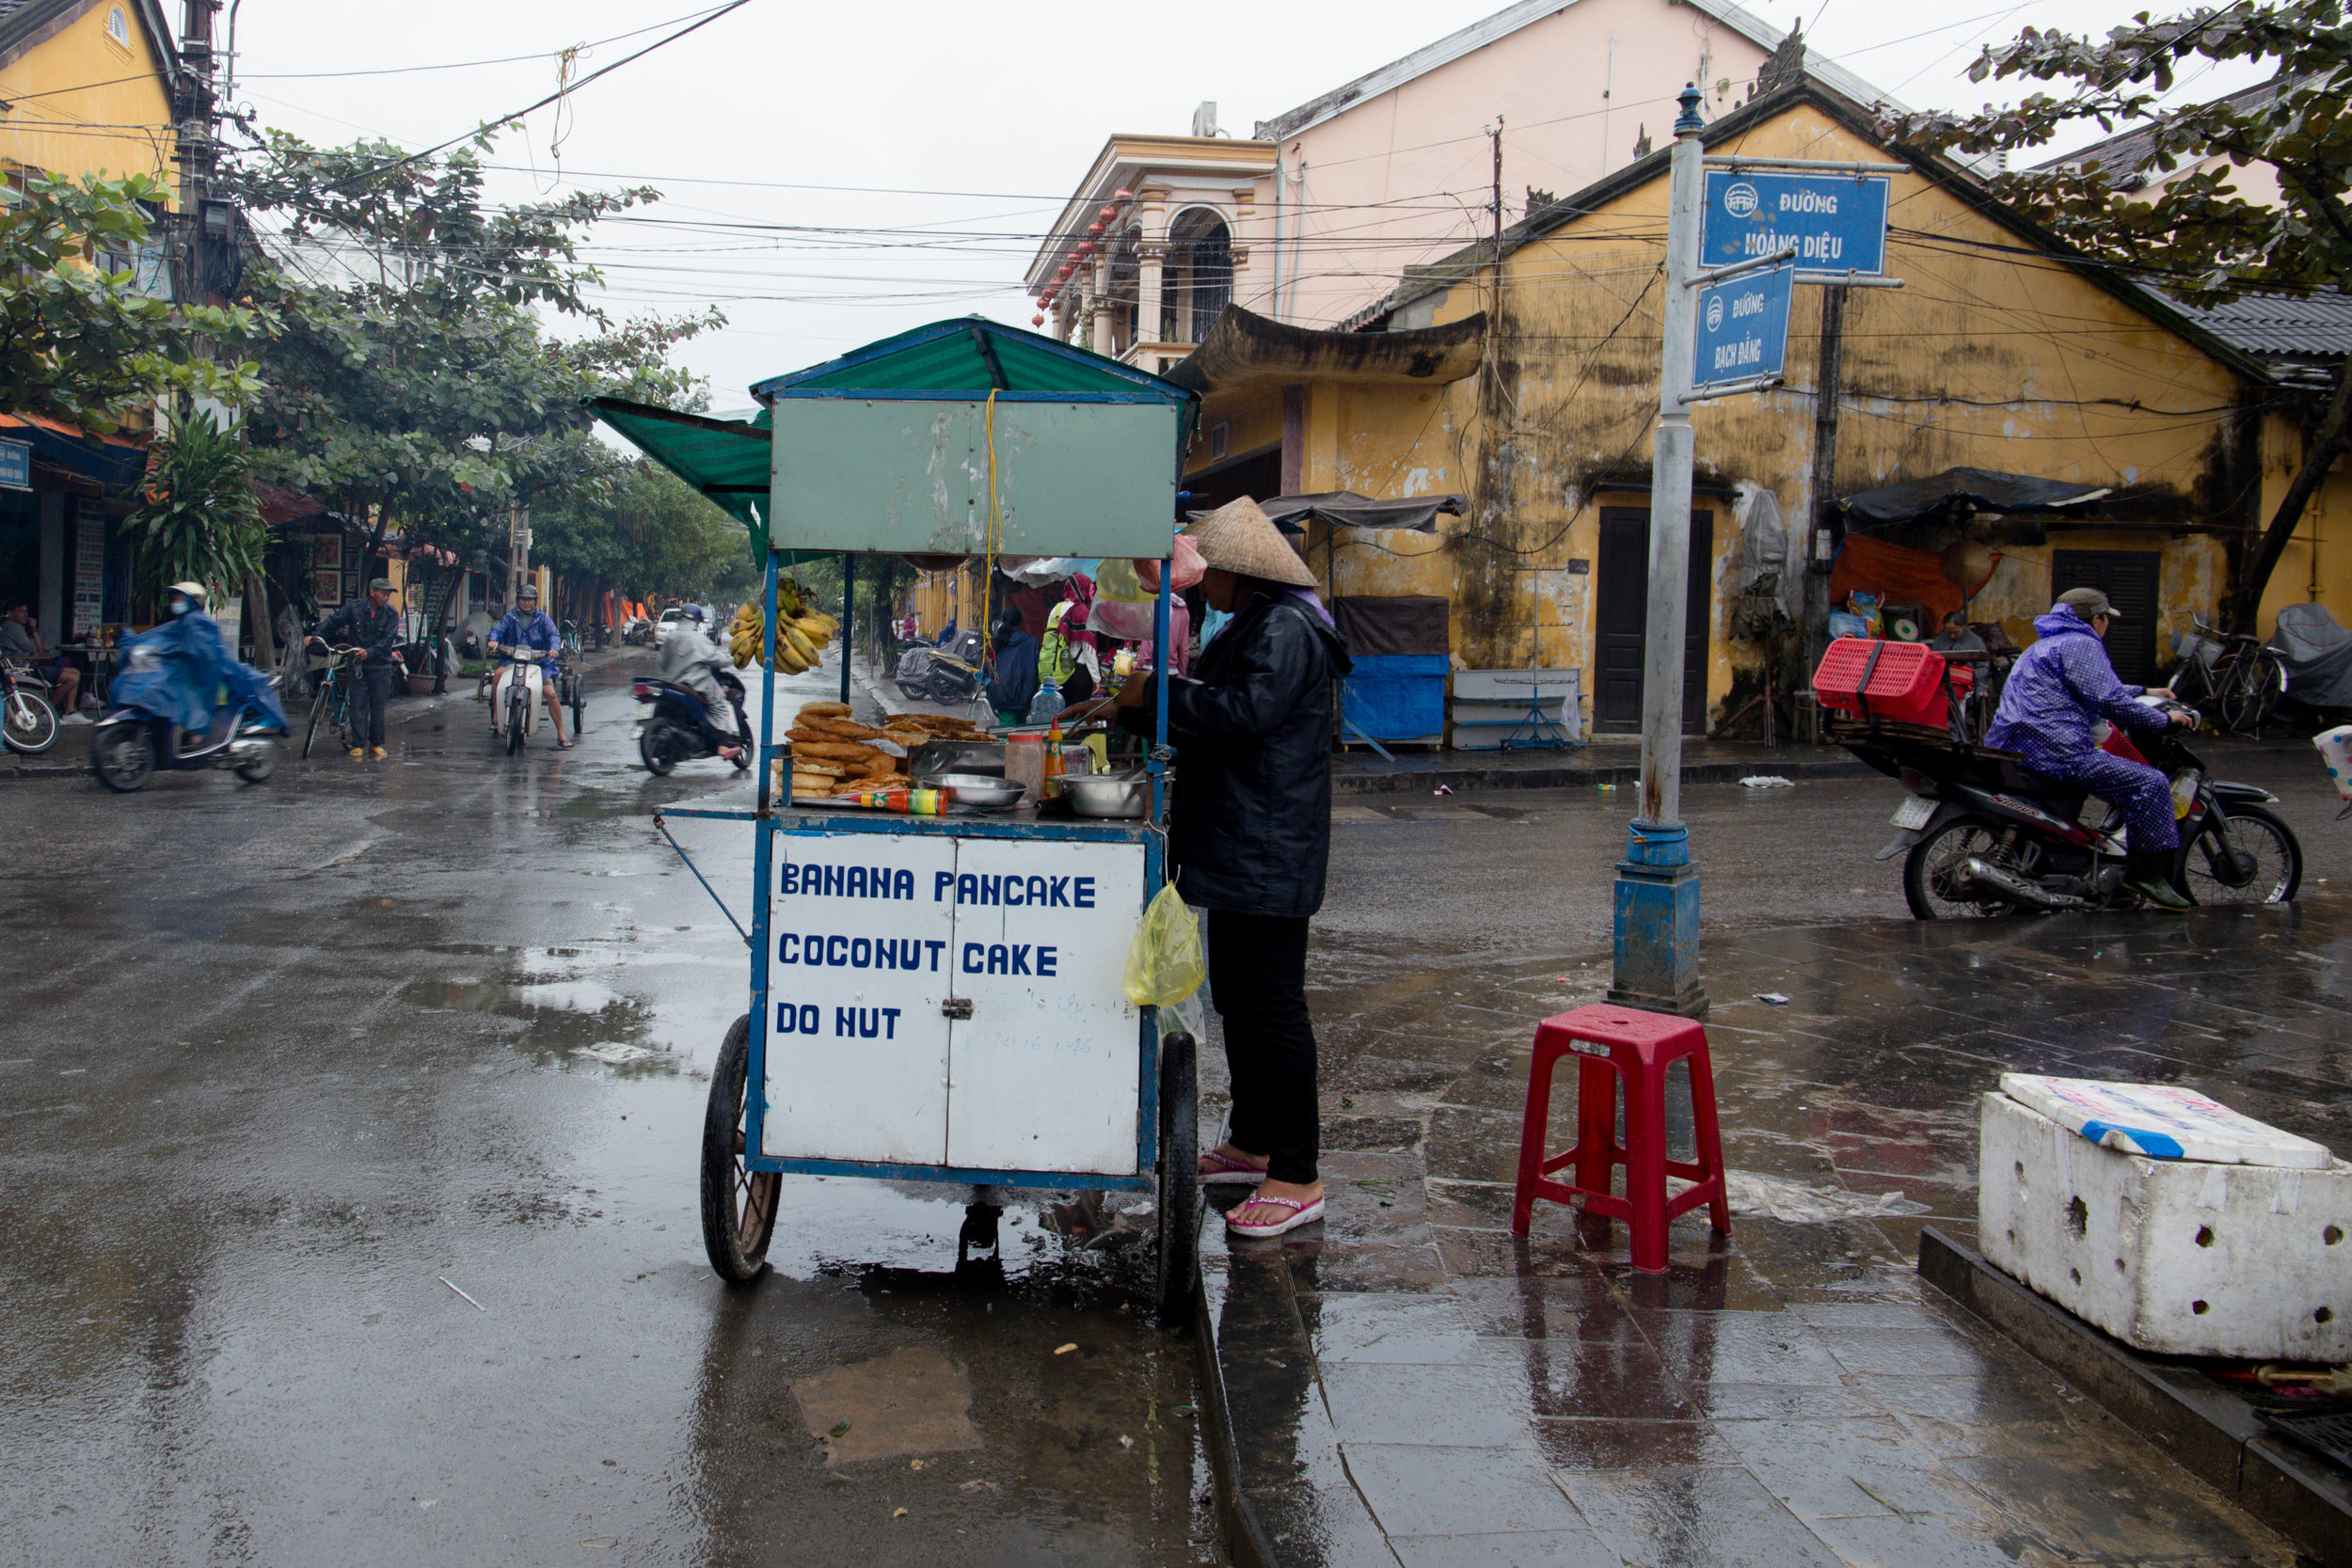 An entrepreneur on the streets in Hoi An Ancient Town, Vietnam.